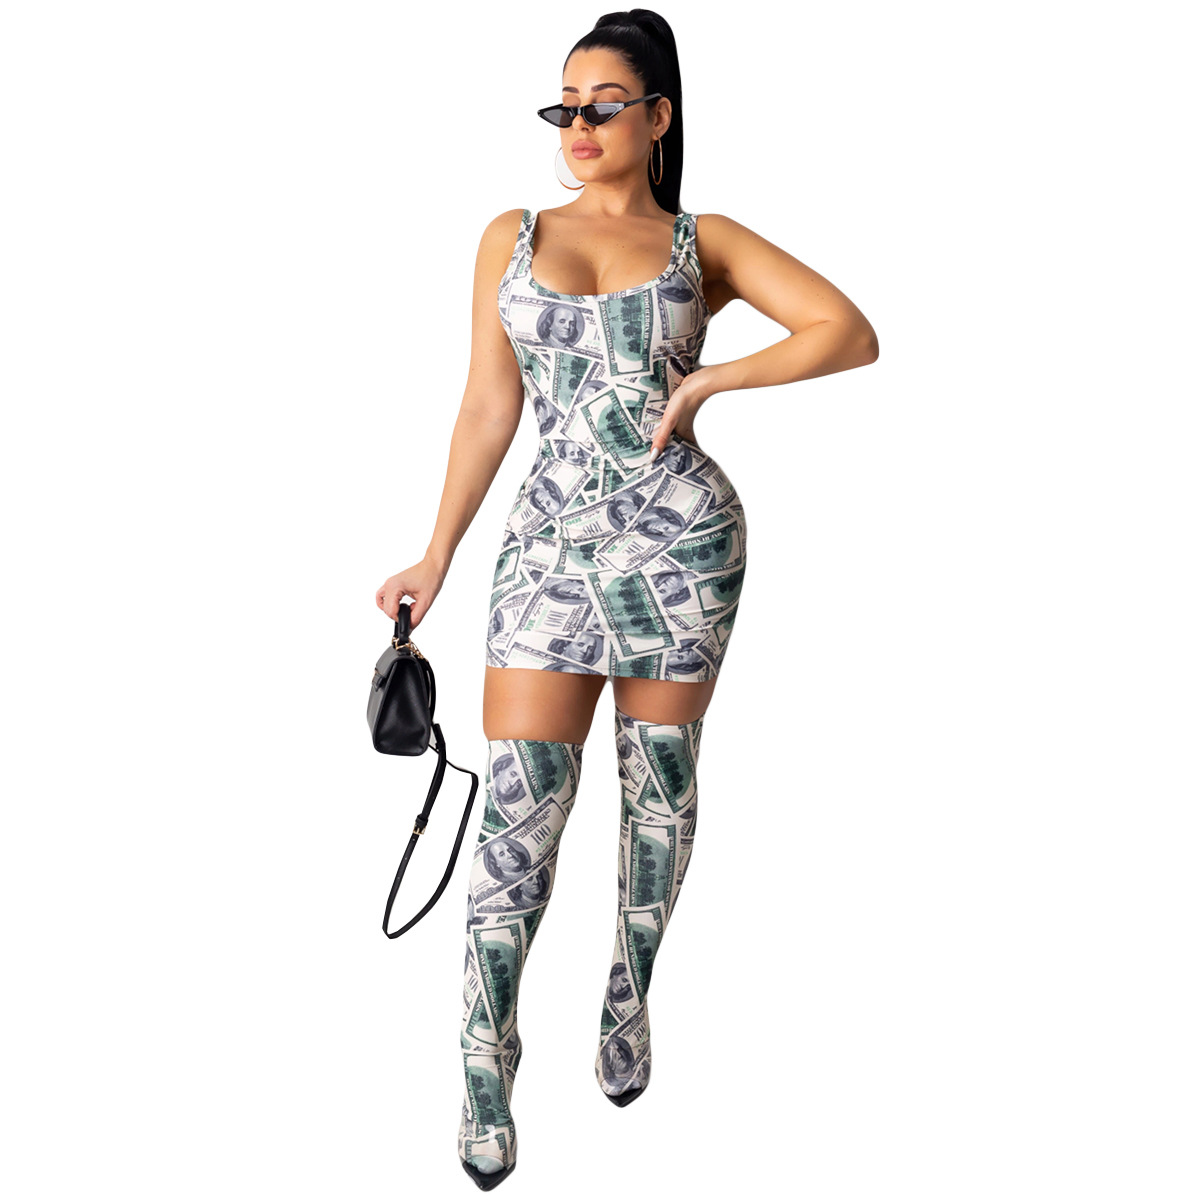 Sexy Fashion Women Mini Dress Included Knee Socks Digital Floral Printed American Flag Dollar Summer Outfits Club Party Sundress 7